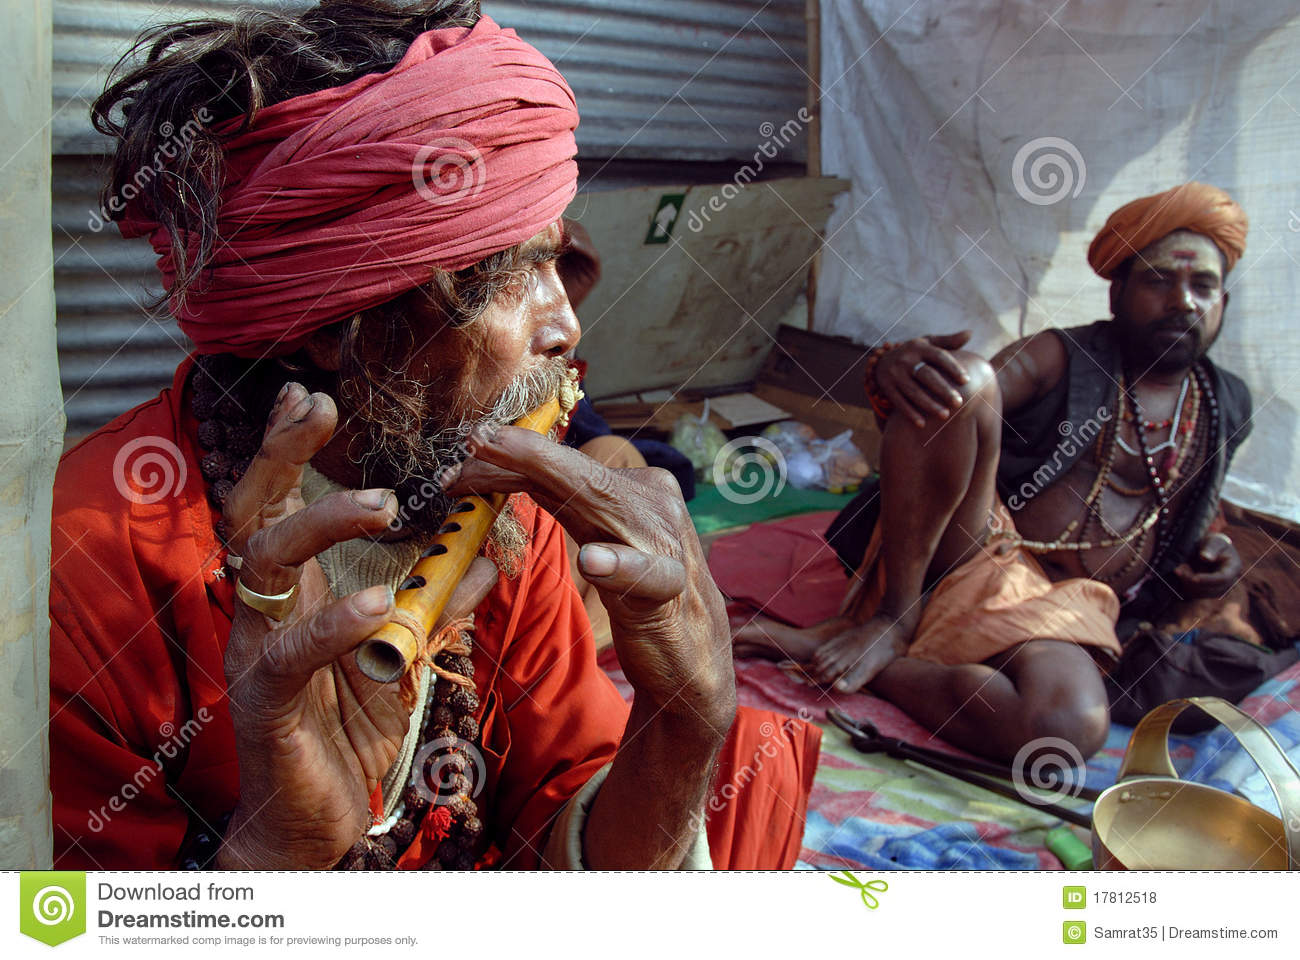 Sadhus Of India http://www.dreamstime.com/royalty-free-stock-photos-sadhus-holy-men-india-image17812518